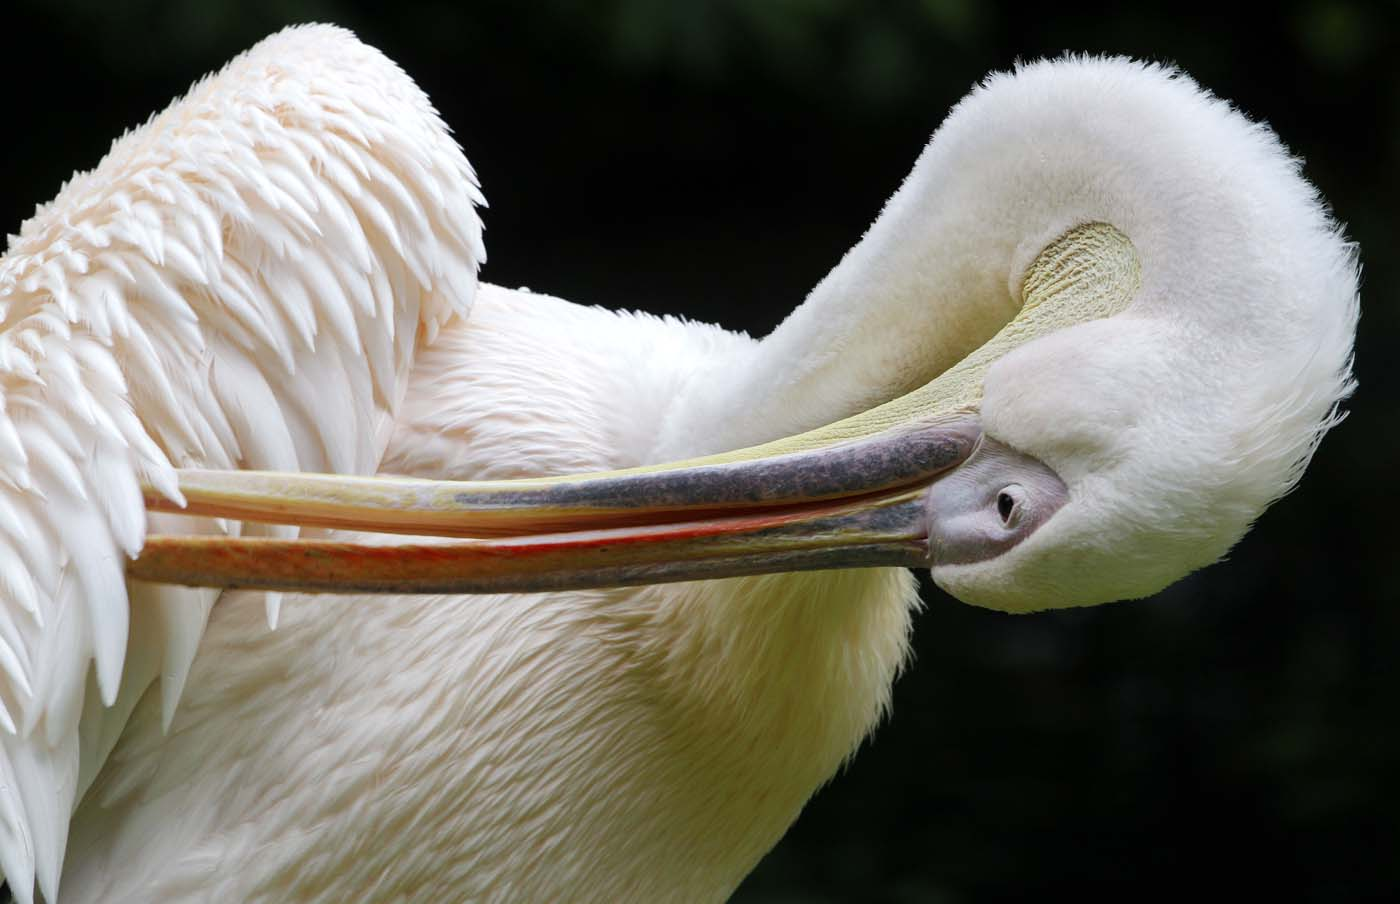 A Great White Pelican cleans his coat at the zoo in Krefeld, western Germany, on June 25, 2012. The Great White Pelican is mostly found in Vietnam and South Africa. (Roland Weihrauch/AFP/Getty Images)